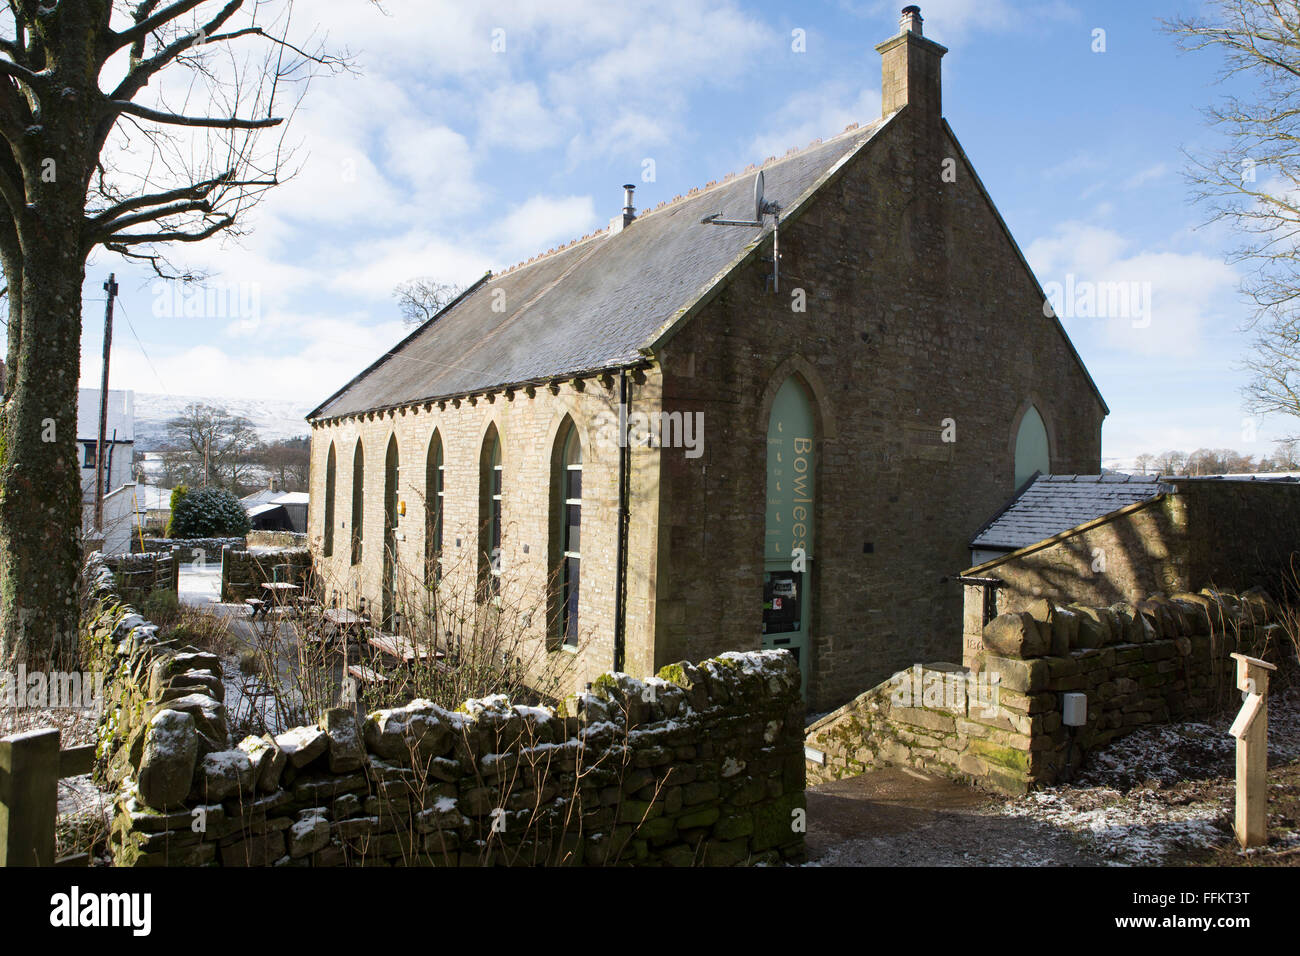 Bowlees Visitor Centre in Upper Teesdale in County Durham, England. The centre houses a gift shop and a cafe. - Stock Image